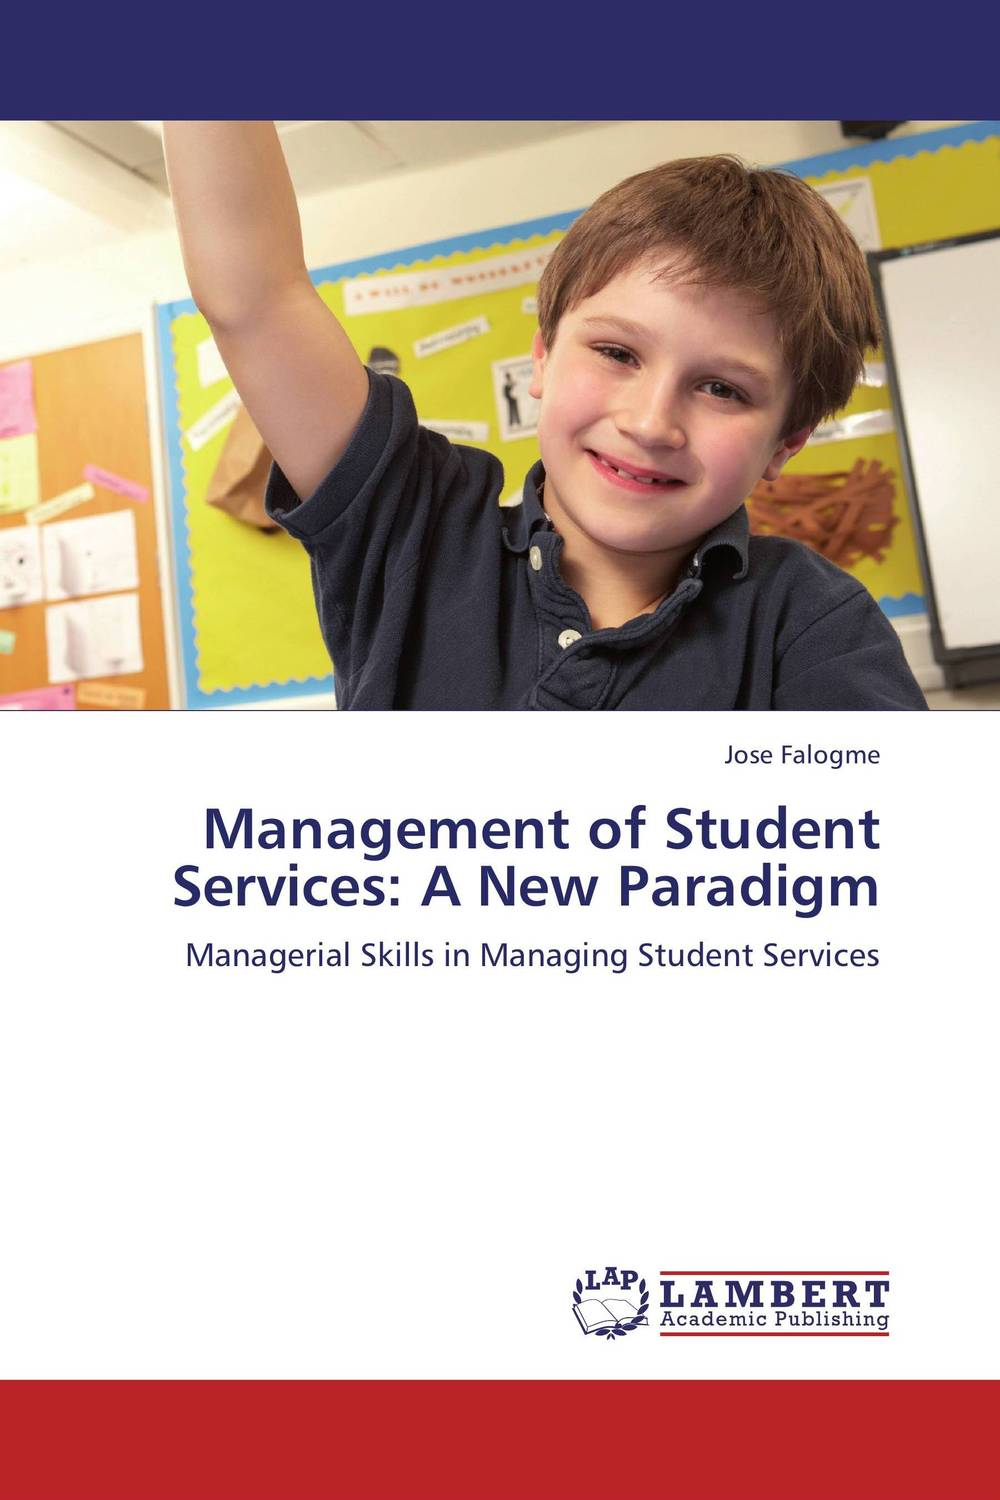 Management of Student Services: A New Paradigm